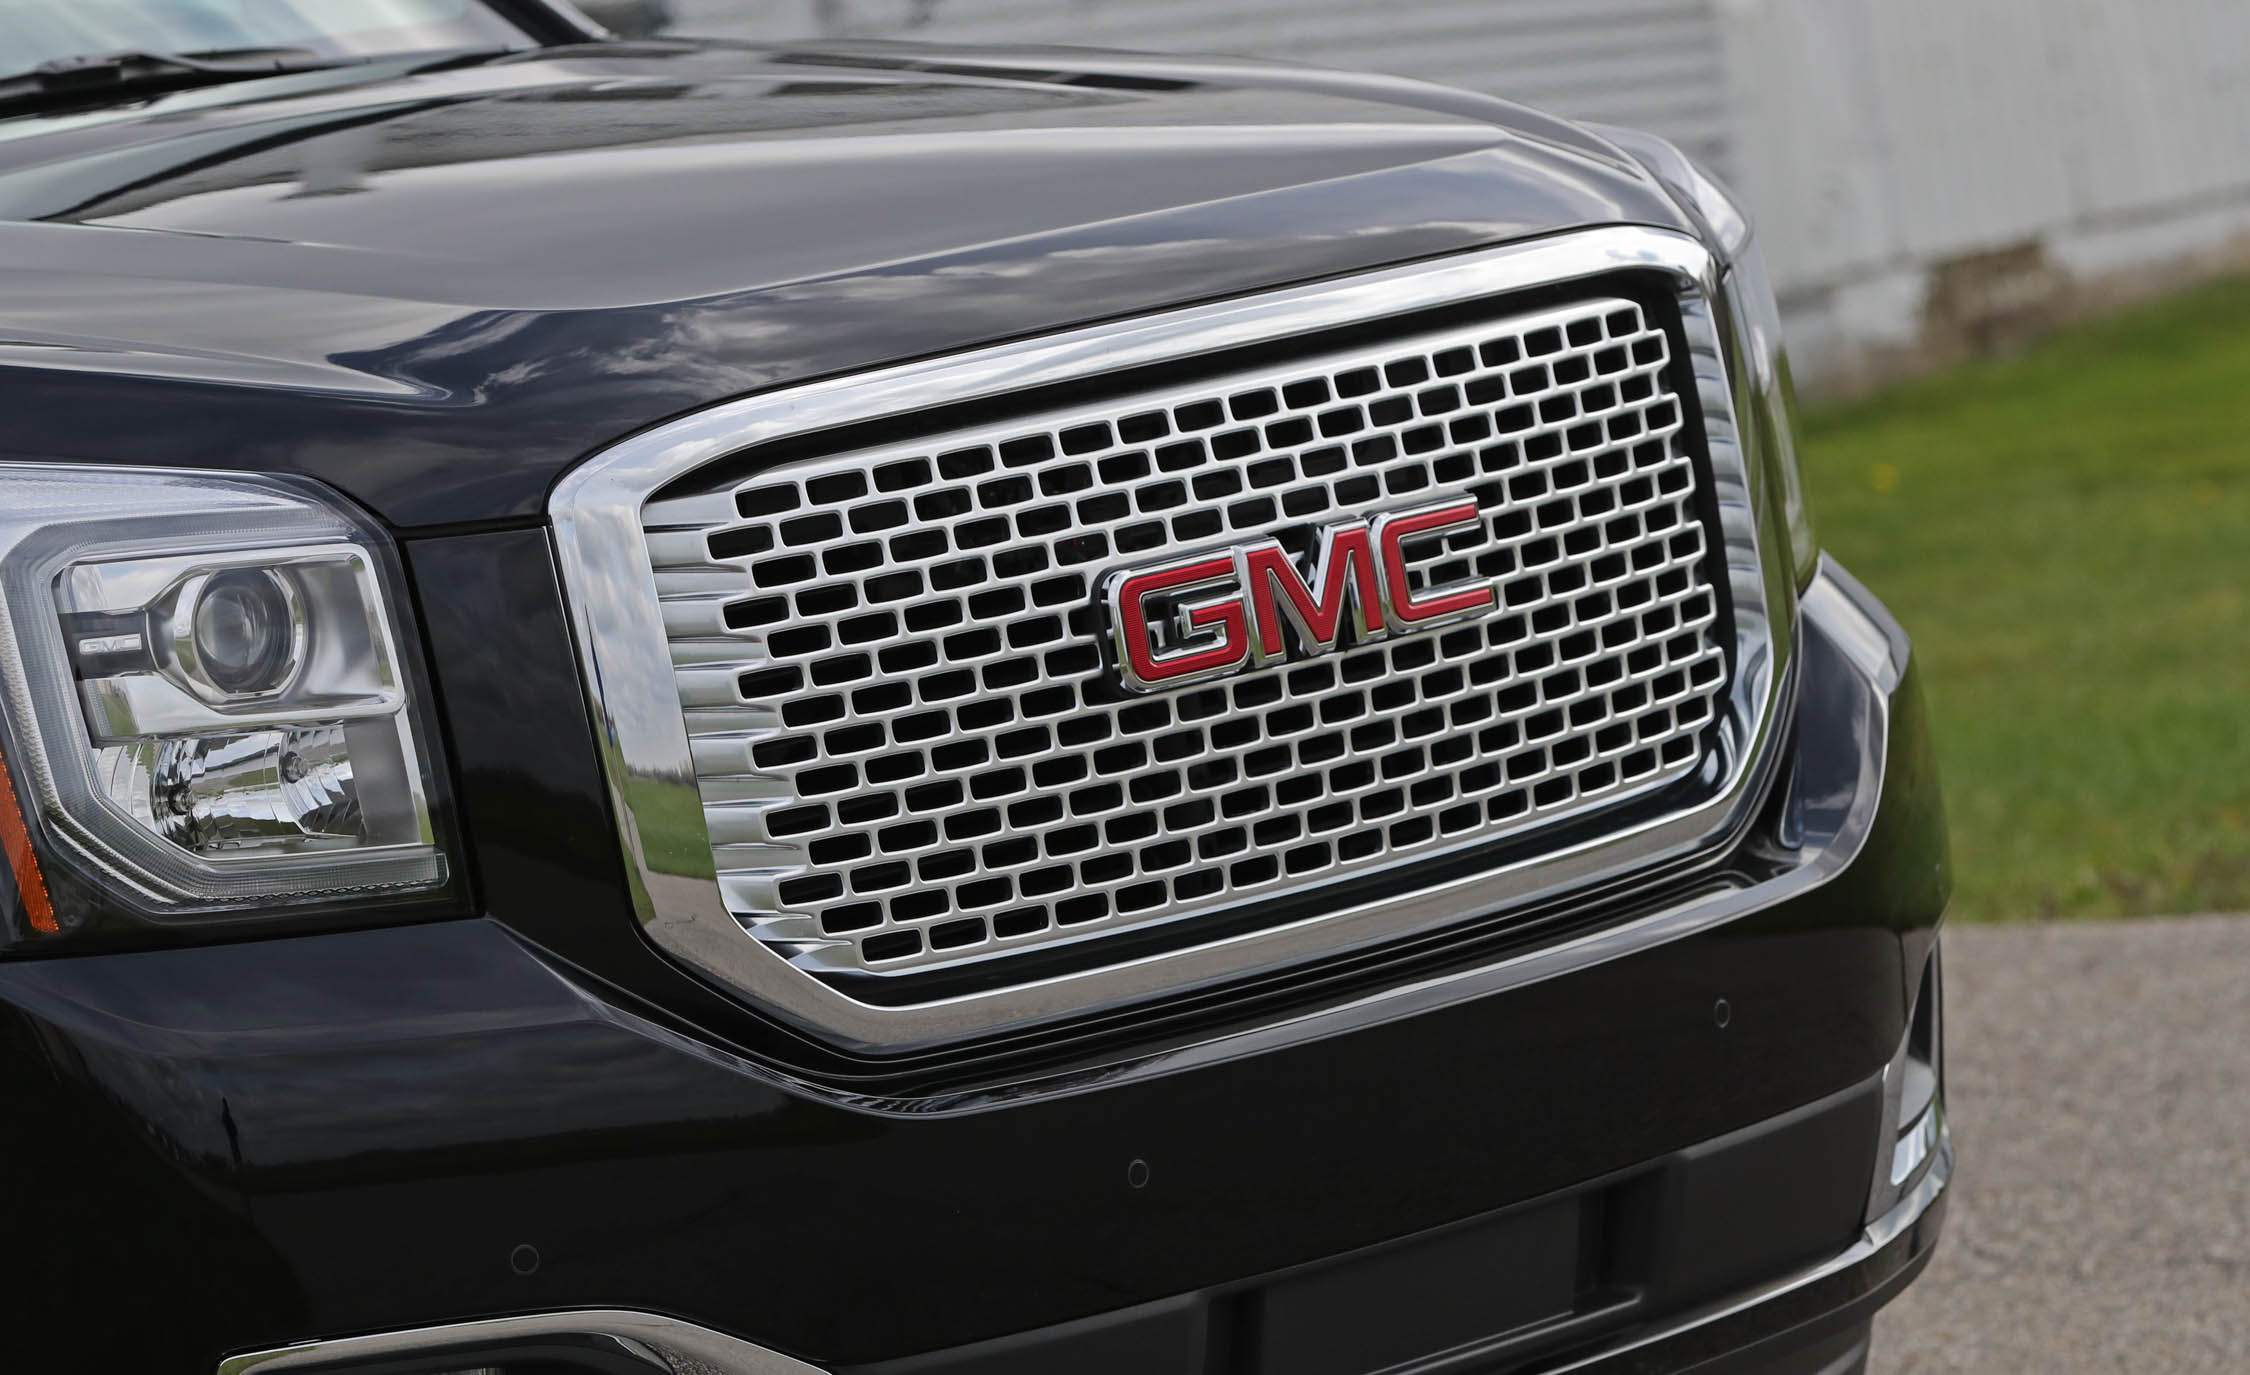 2017 Gmc Yukon Xl Denali Exterior View Grille (Photo 11 of 26)